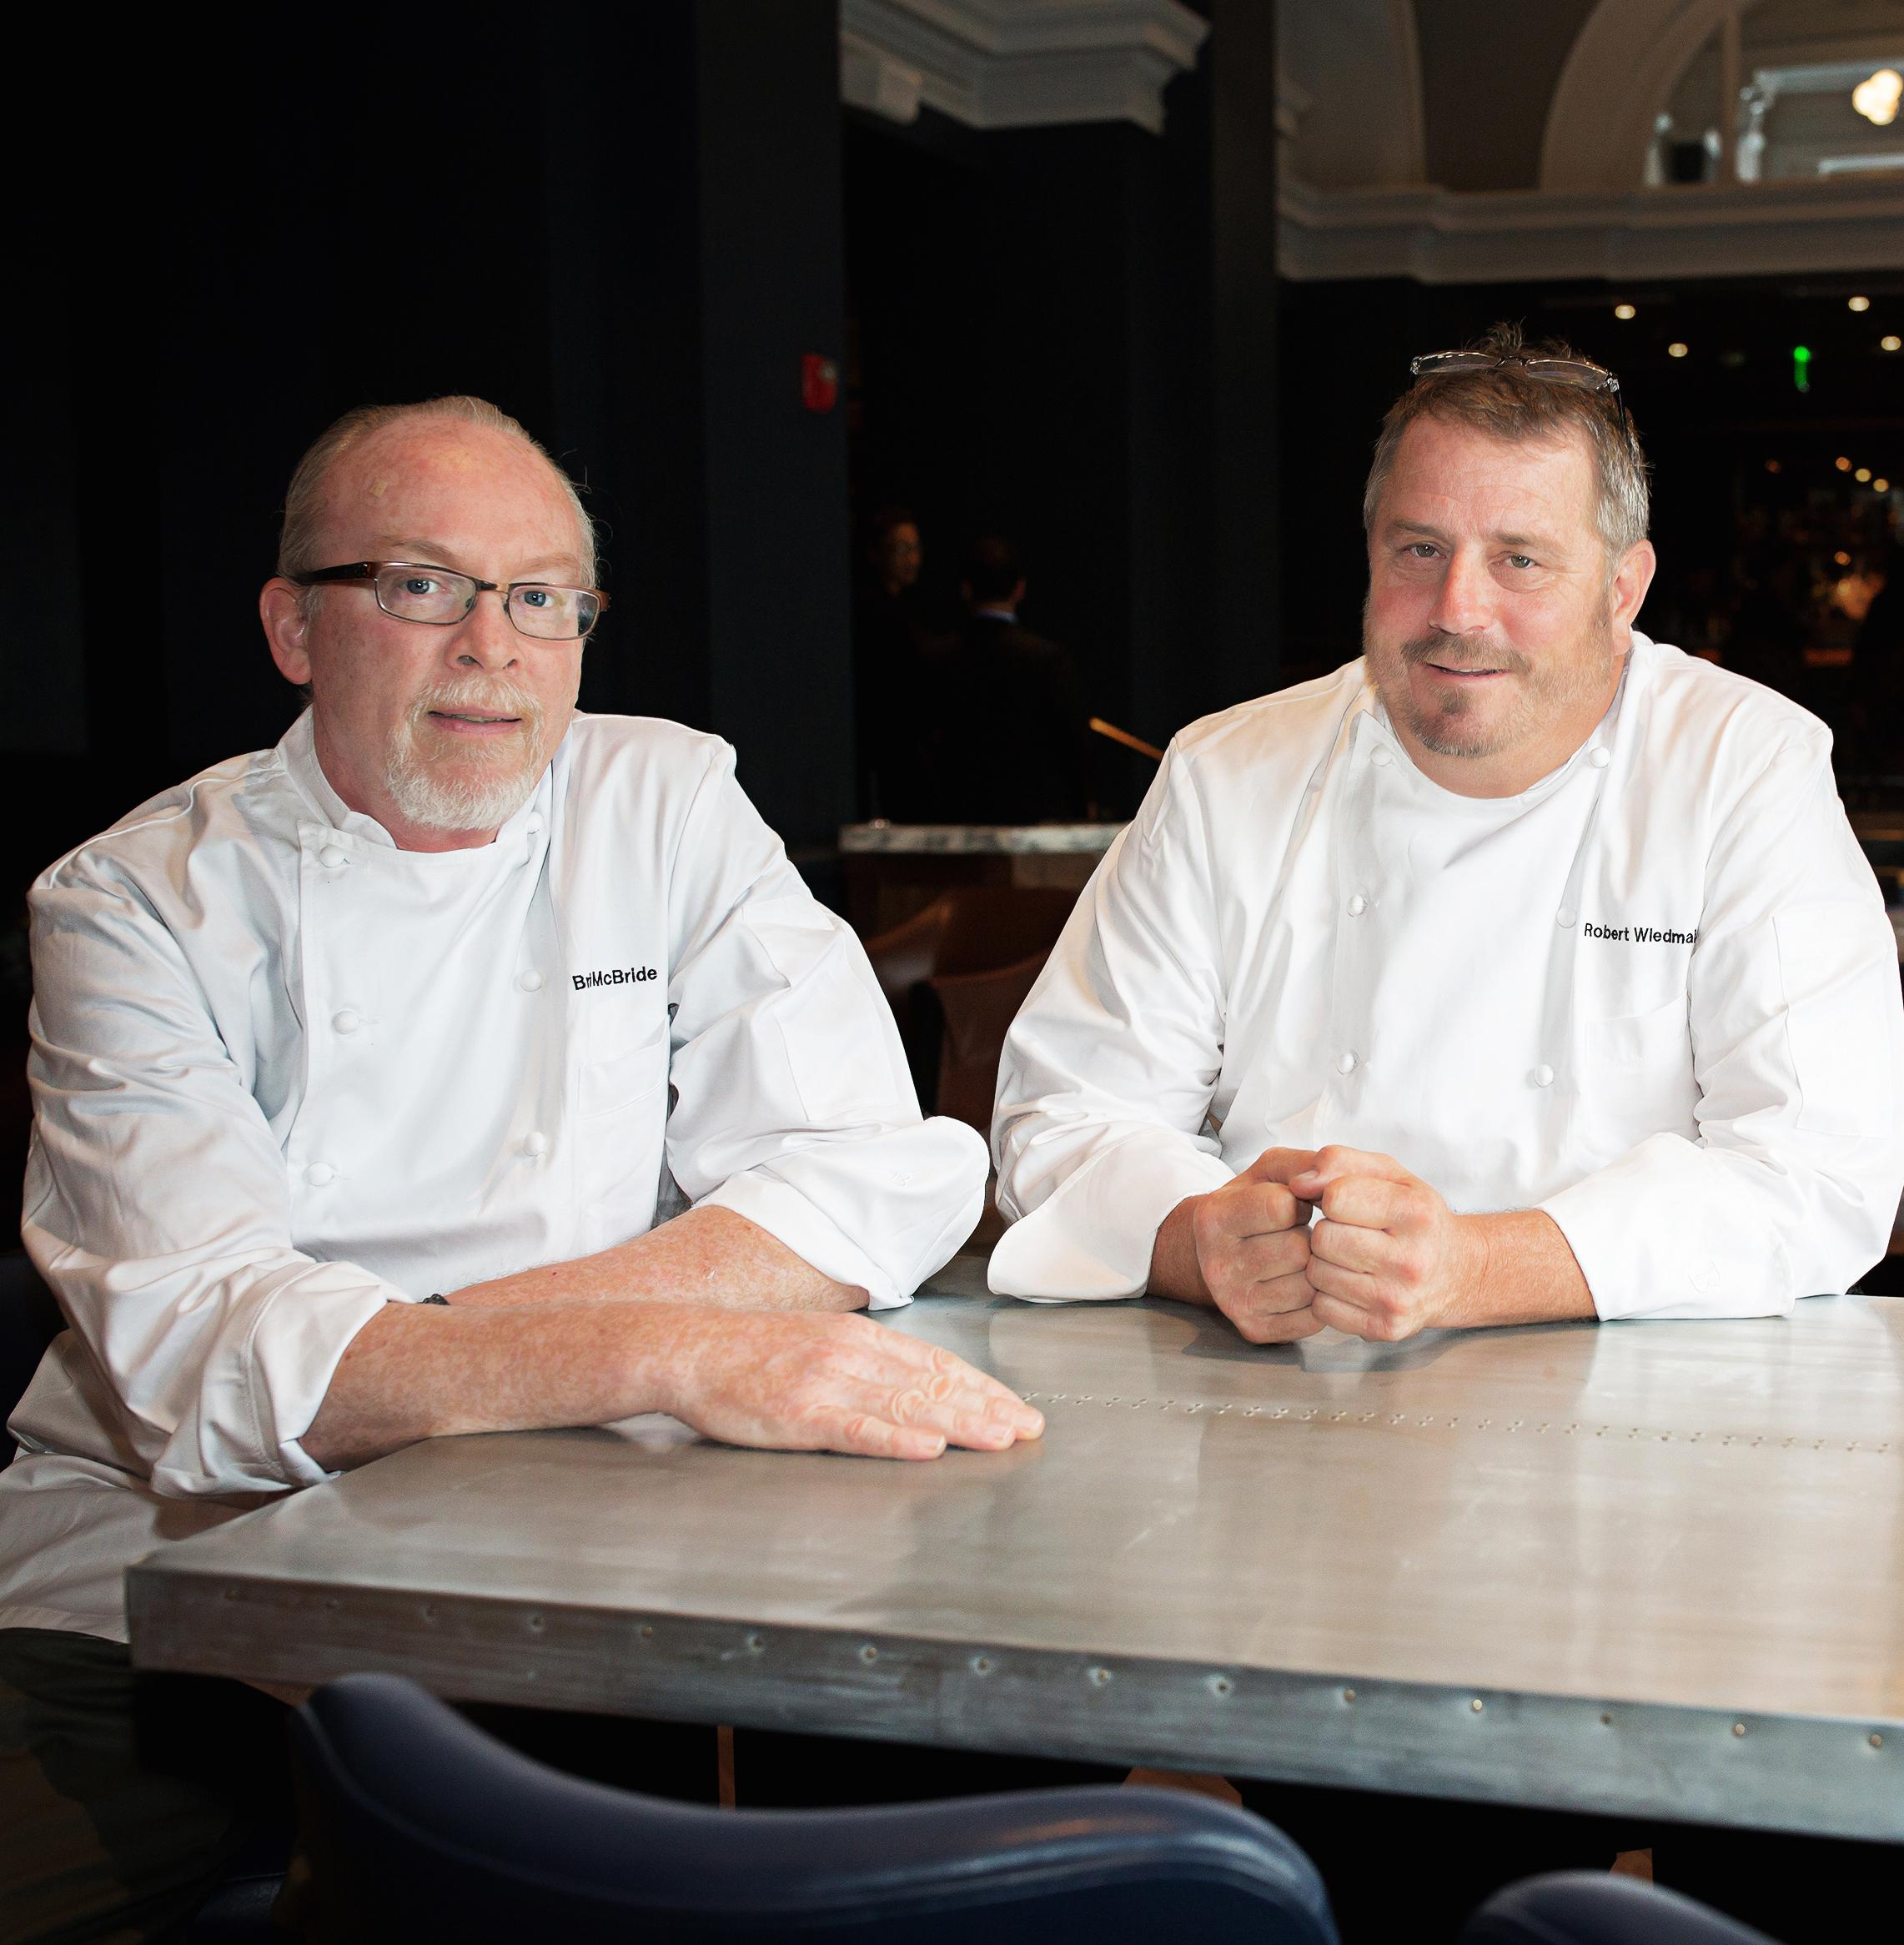 Chefs Robert Wiedmaier and Brian McBride of Siren by RW (Image: Scott Suchman)